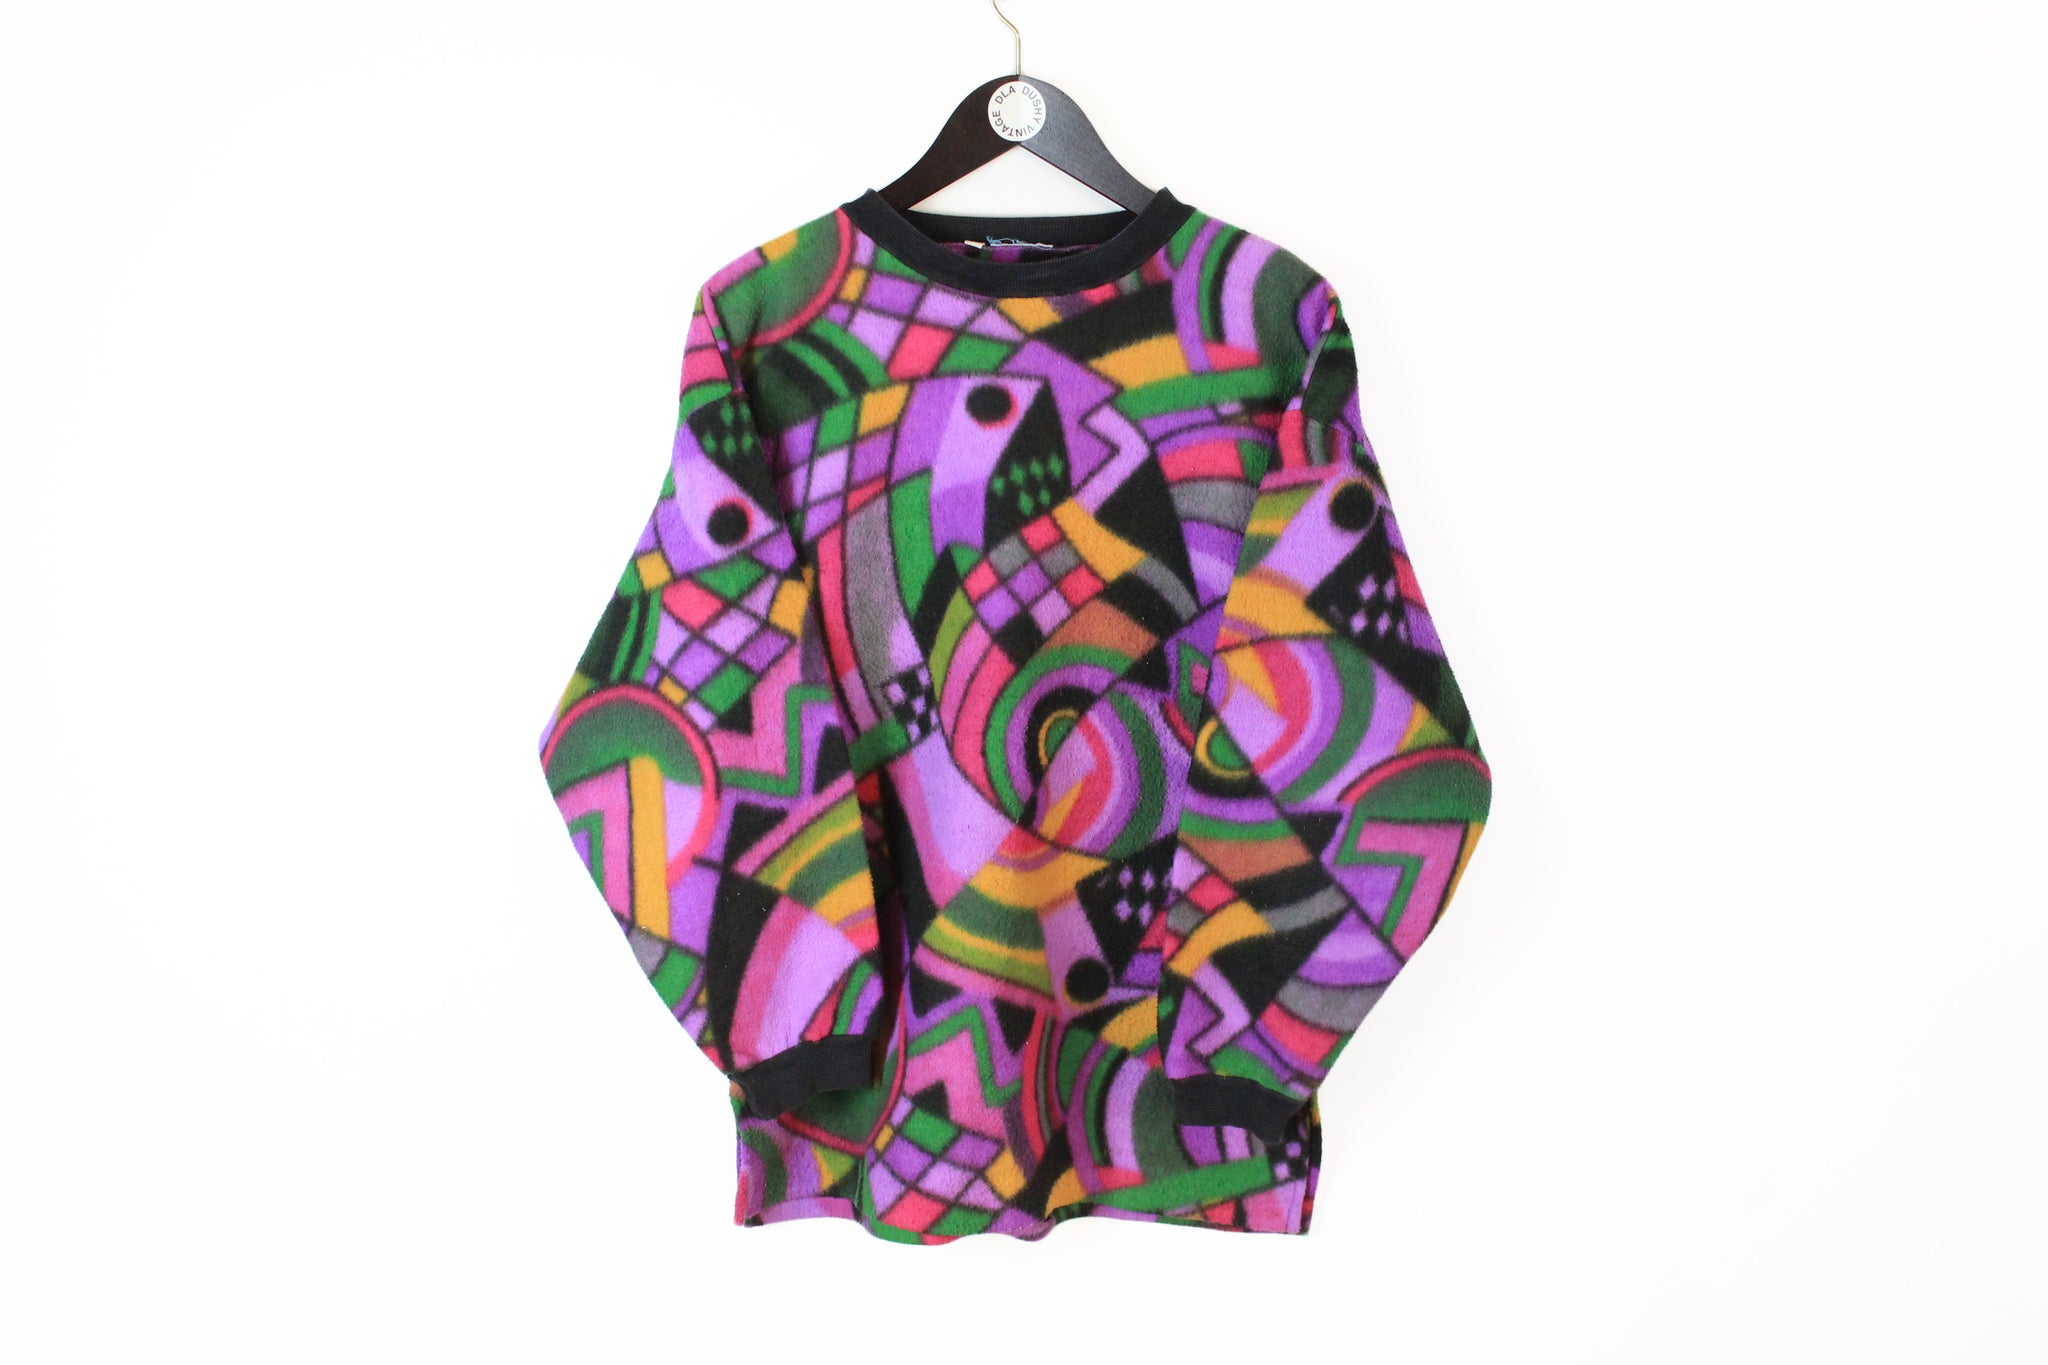 Vintage Fleece Sweatshirt Women's Medium / Large abstract crazy pattern multicolor sweater